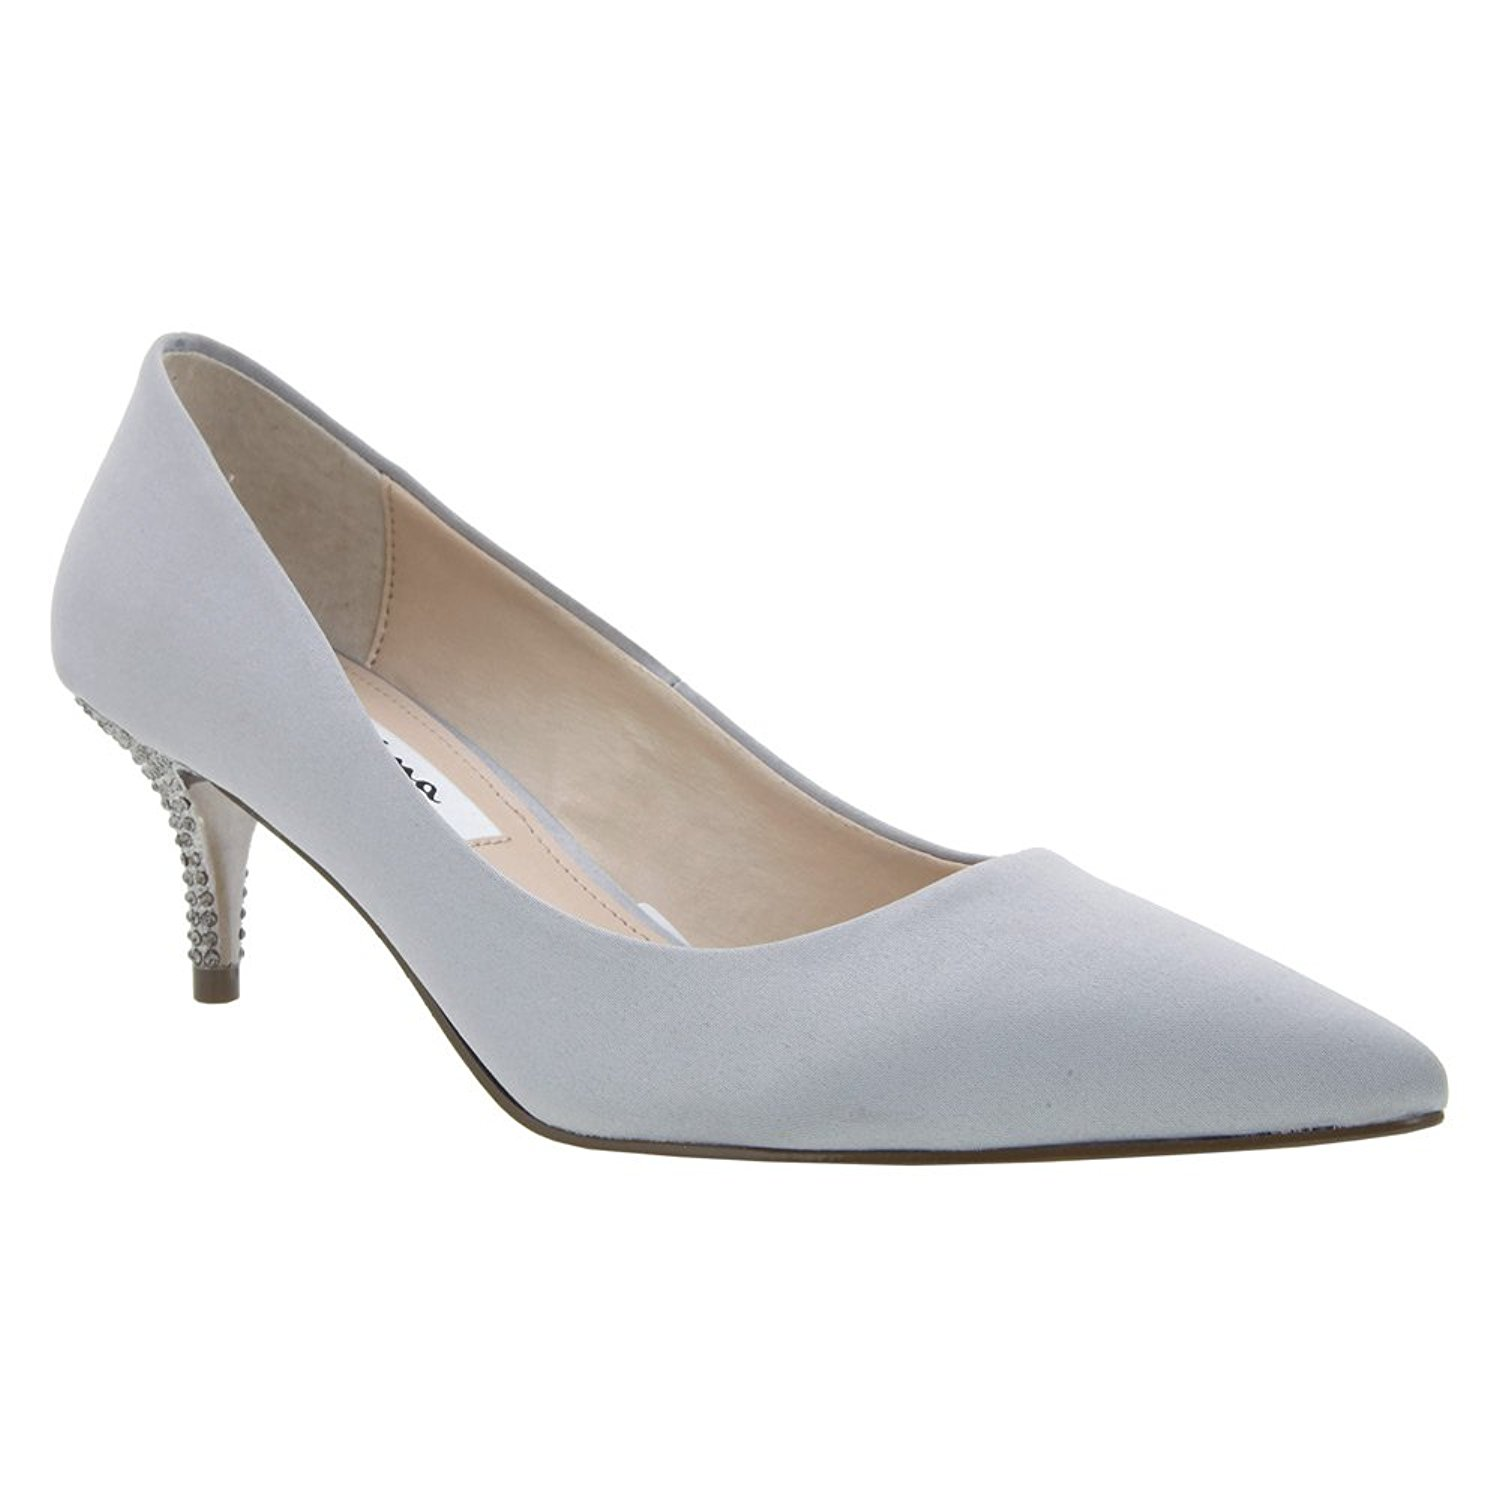 Nina Womens Teressa Pointed Toe Classic Pumps Champagne Size 11.0